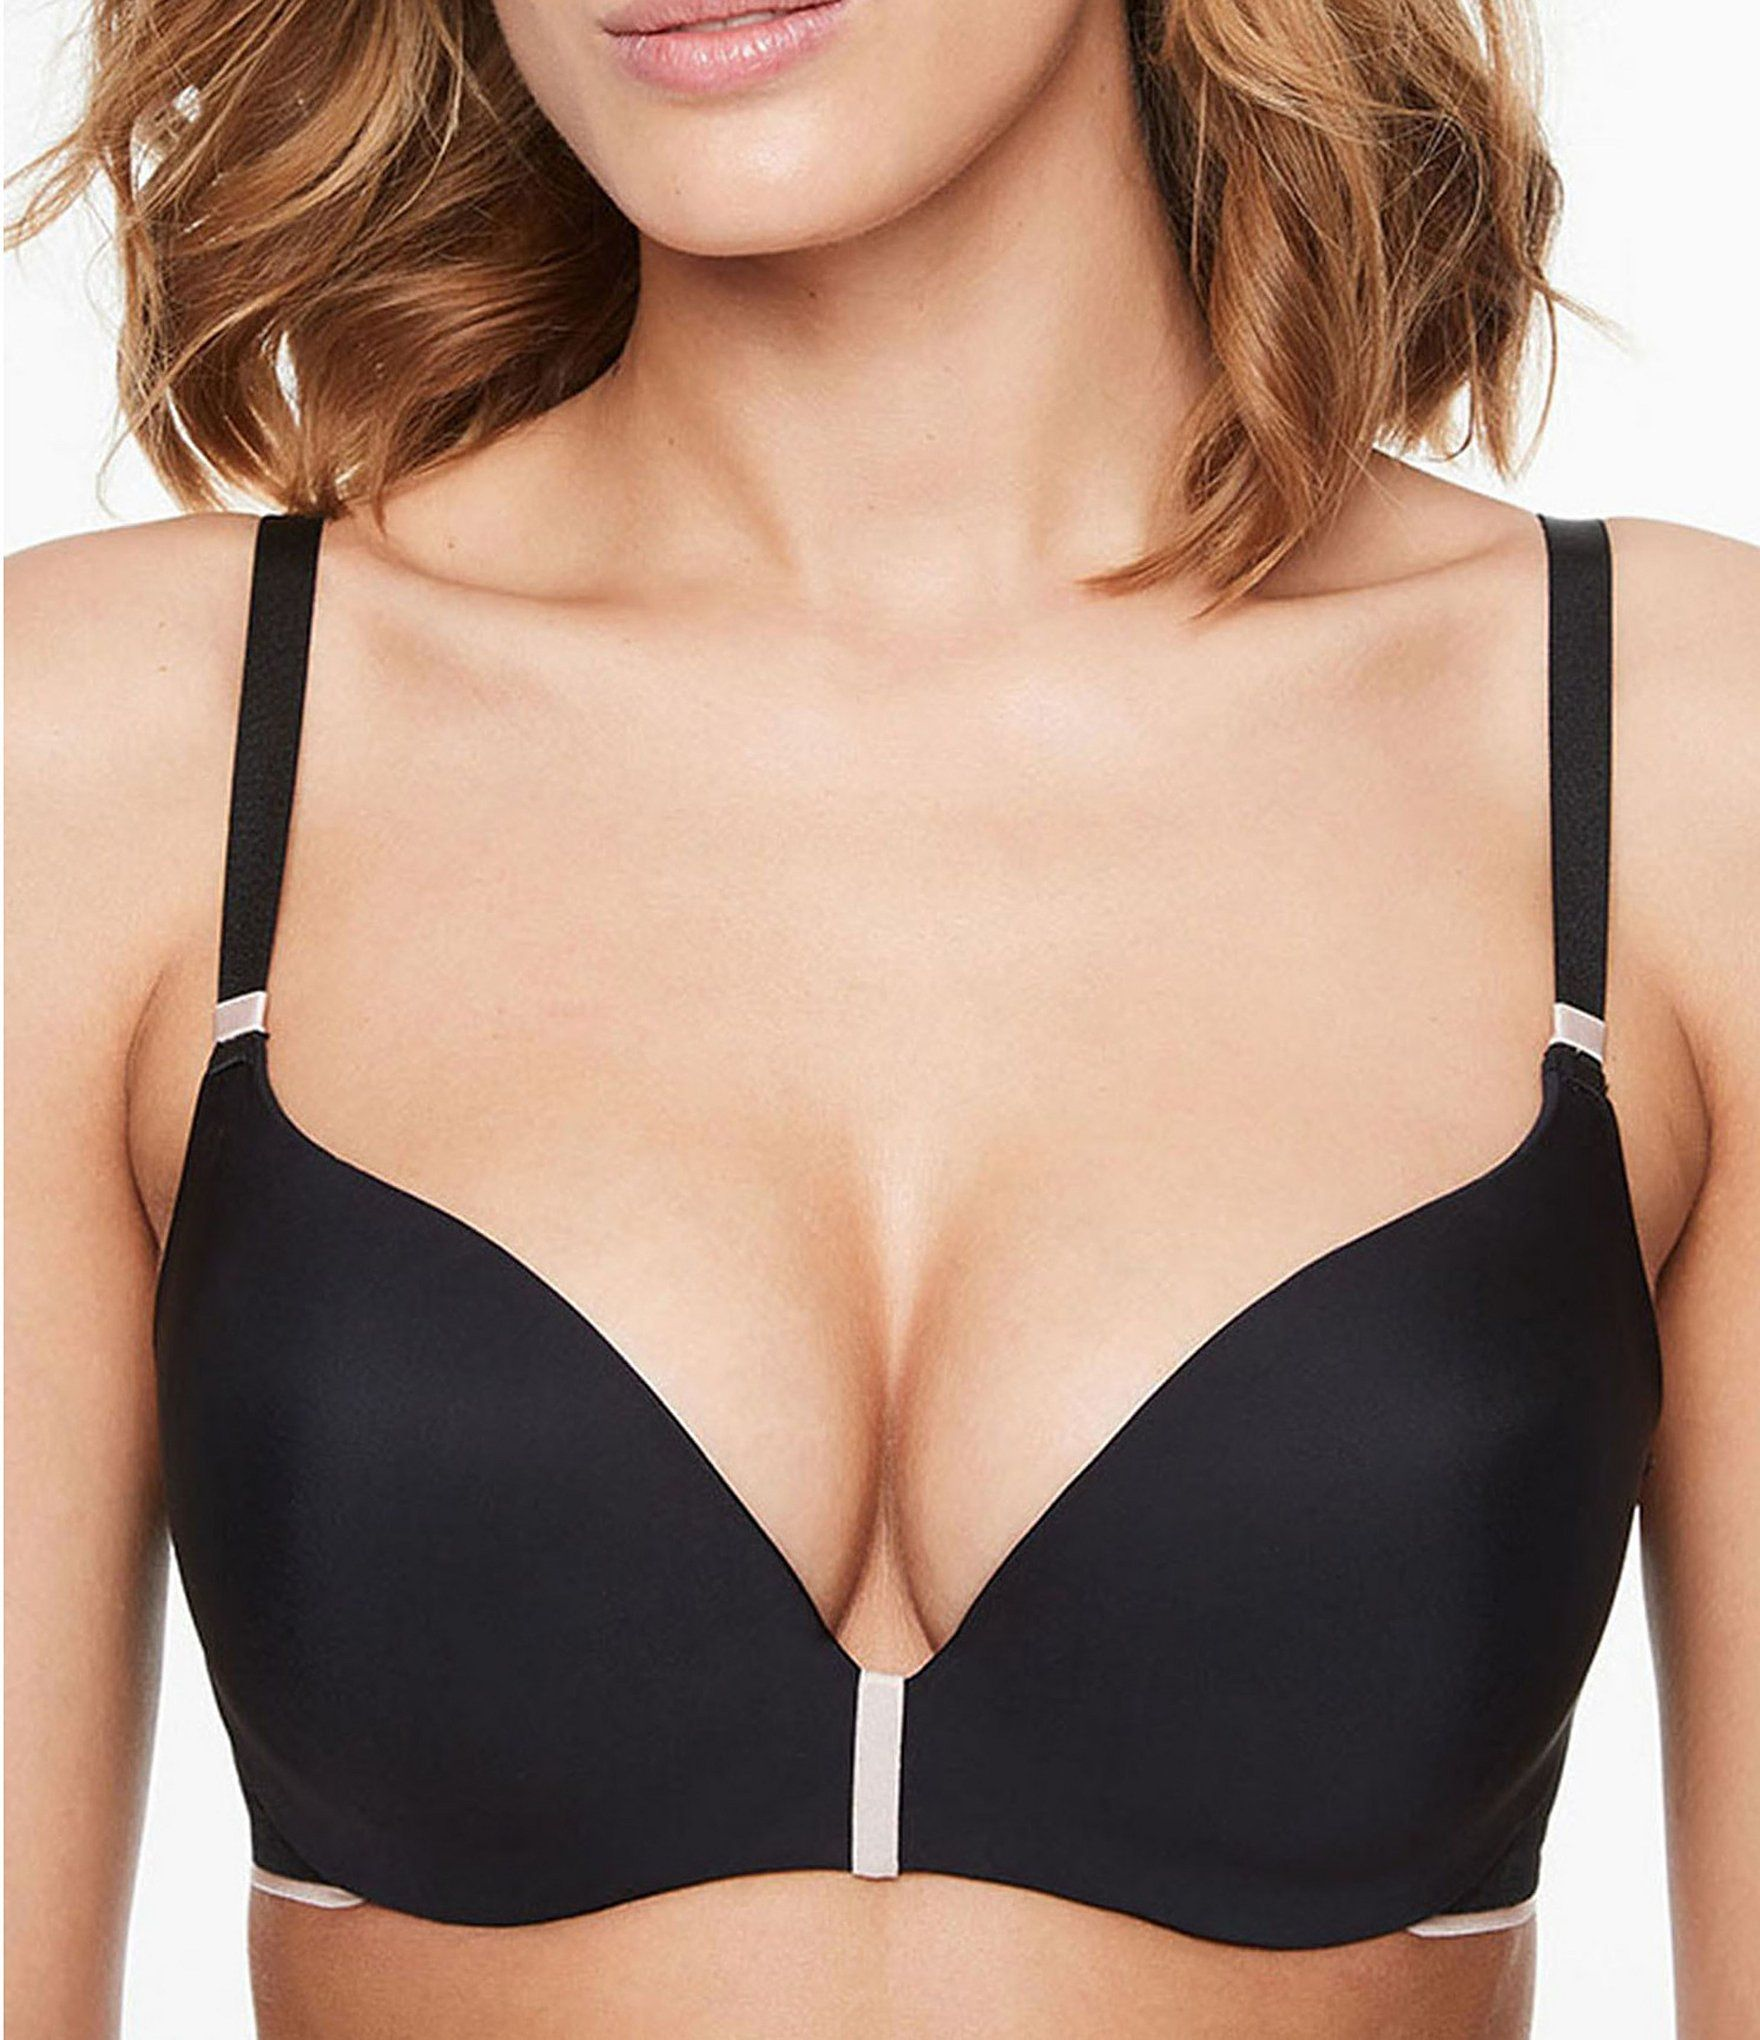 Chantelle Absolute Invisible Smooth Push Up Bra Black 32dd In